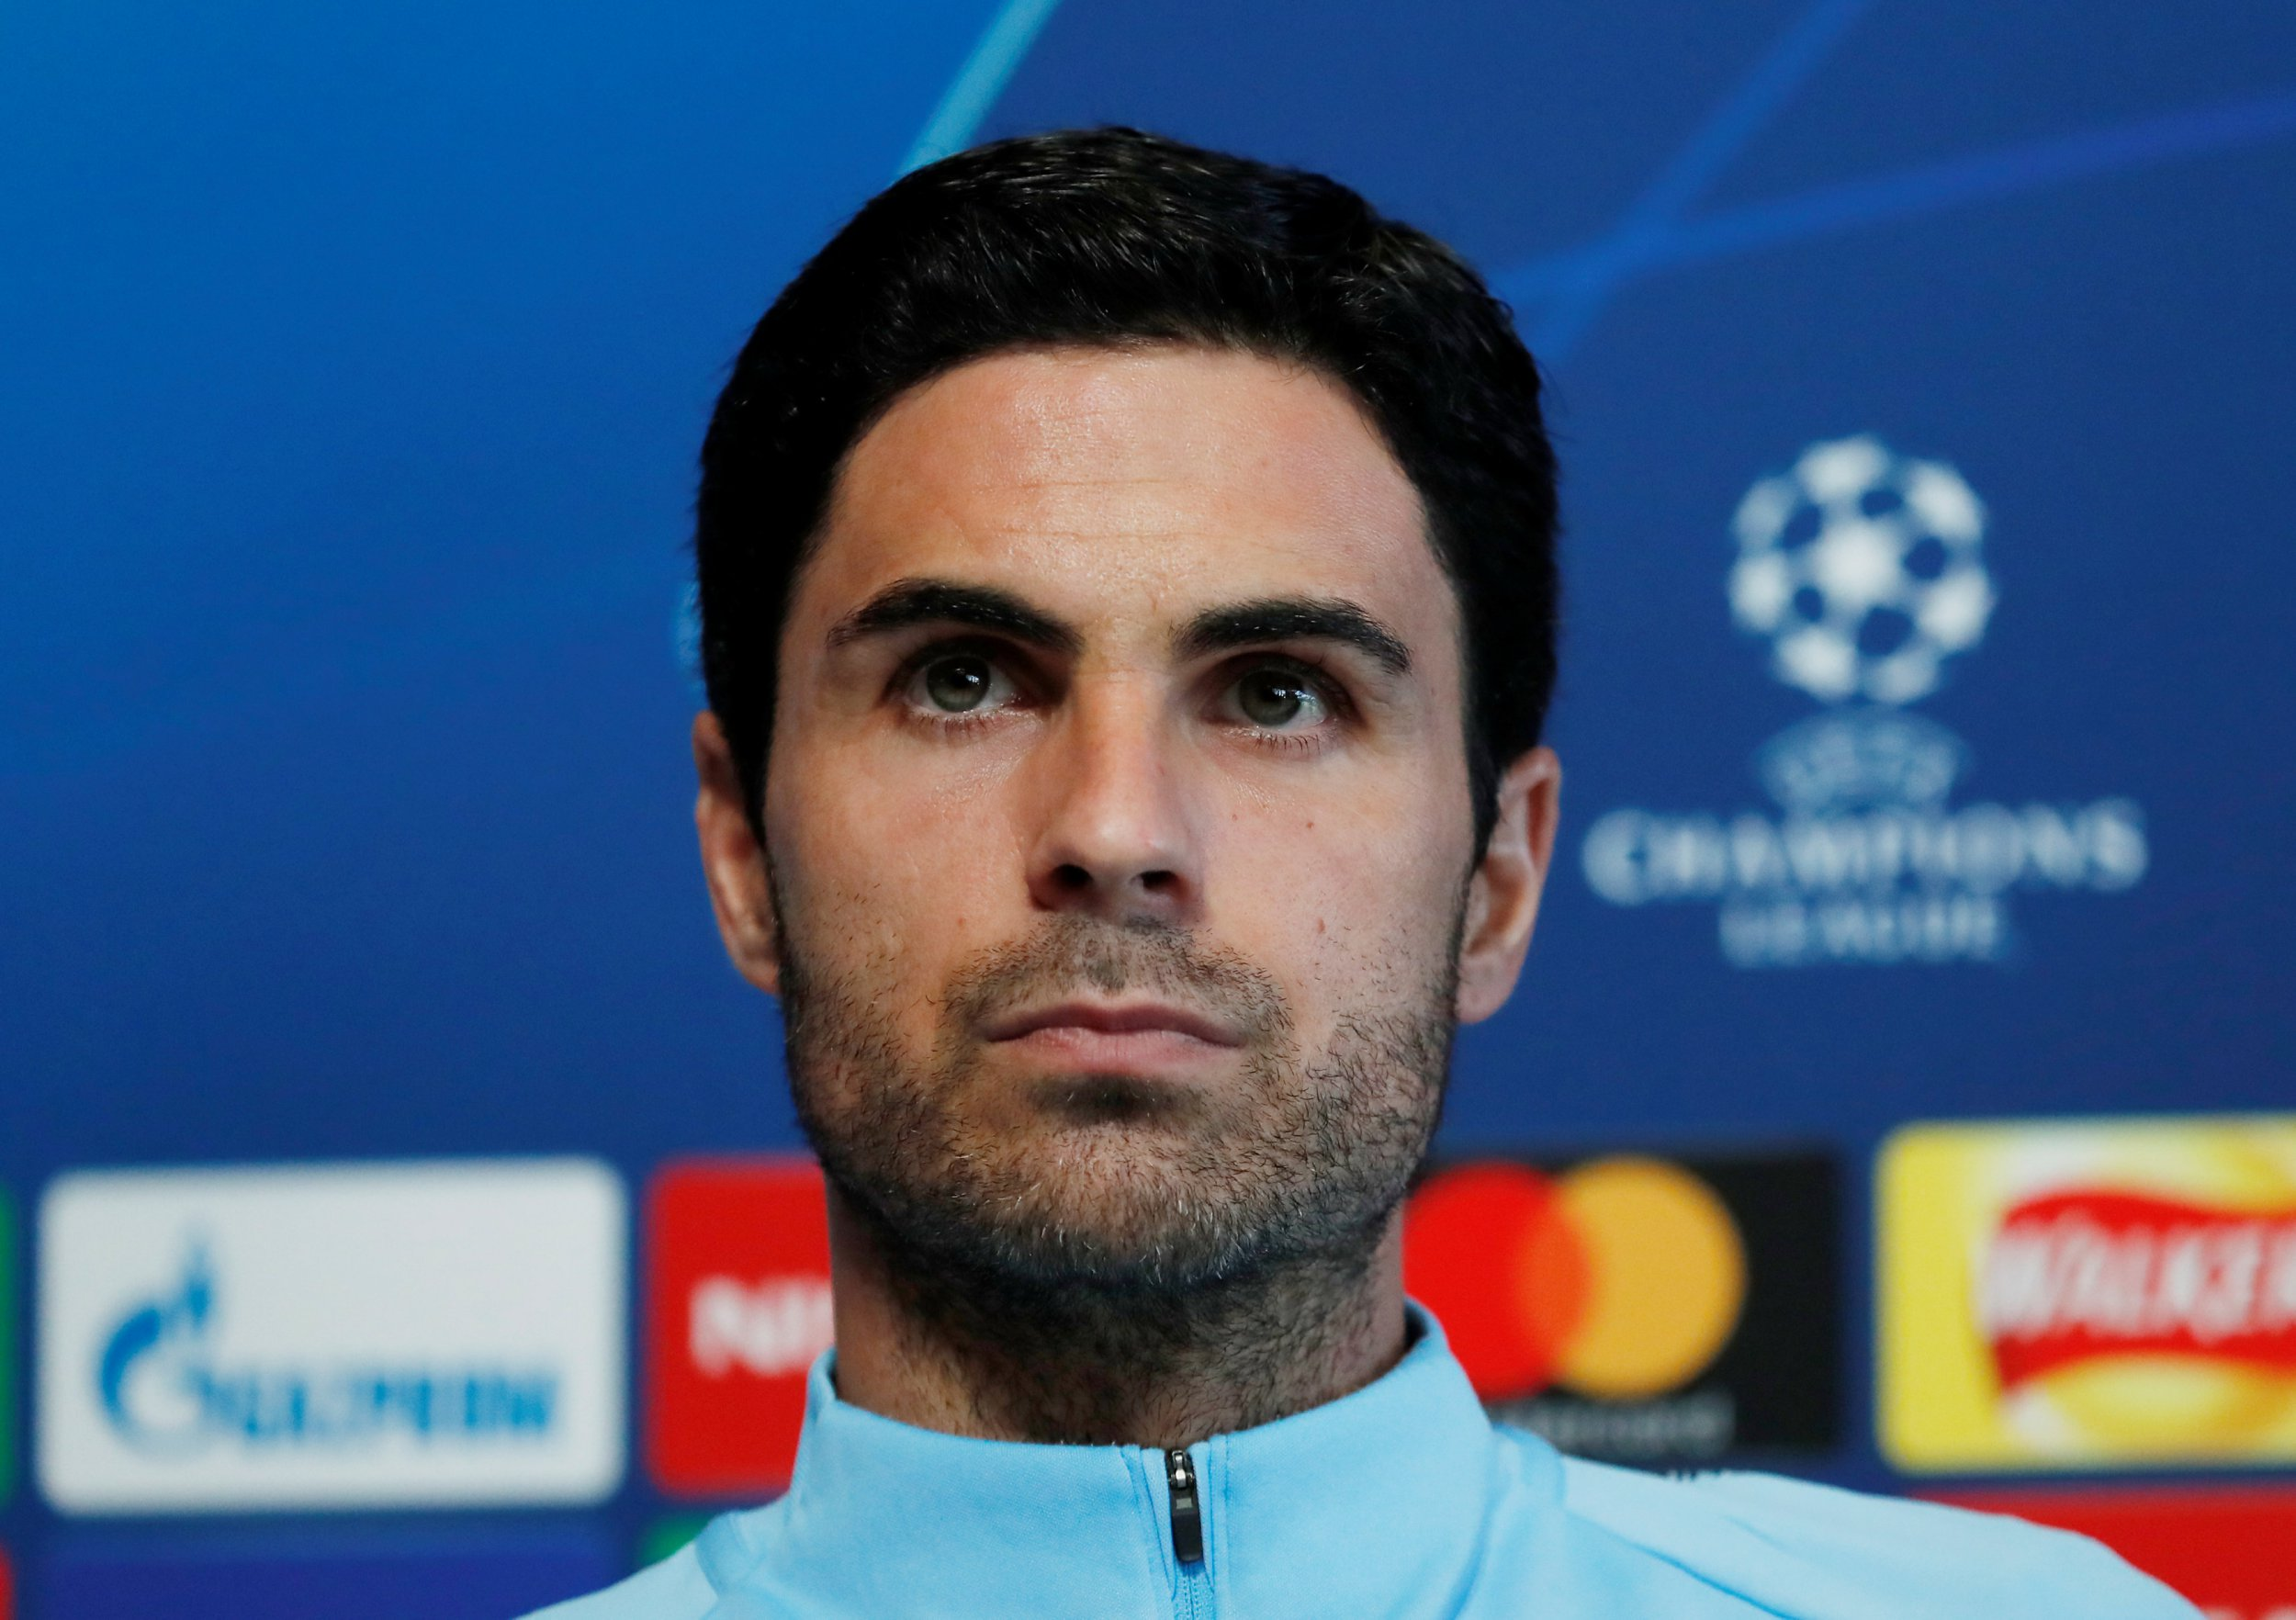 Soccer Football - Champions League - Manchester City Press Conference - Etihad Campus, Manchester, Britain - September 18, 2018 Manchester City co assistant coach Mikel Arteta during the press conference Action Images via Reuters/Andrew Boyers